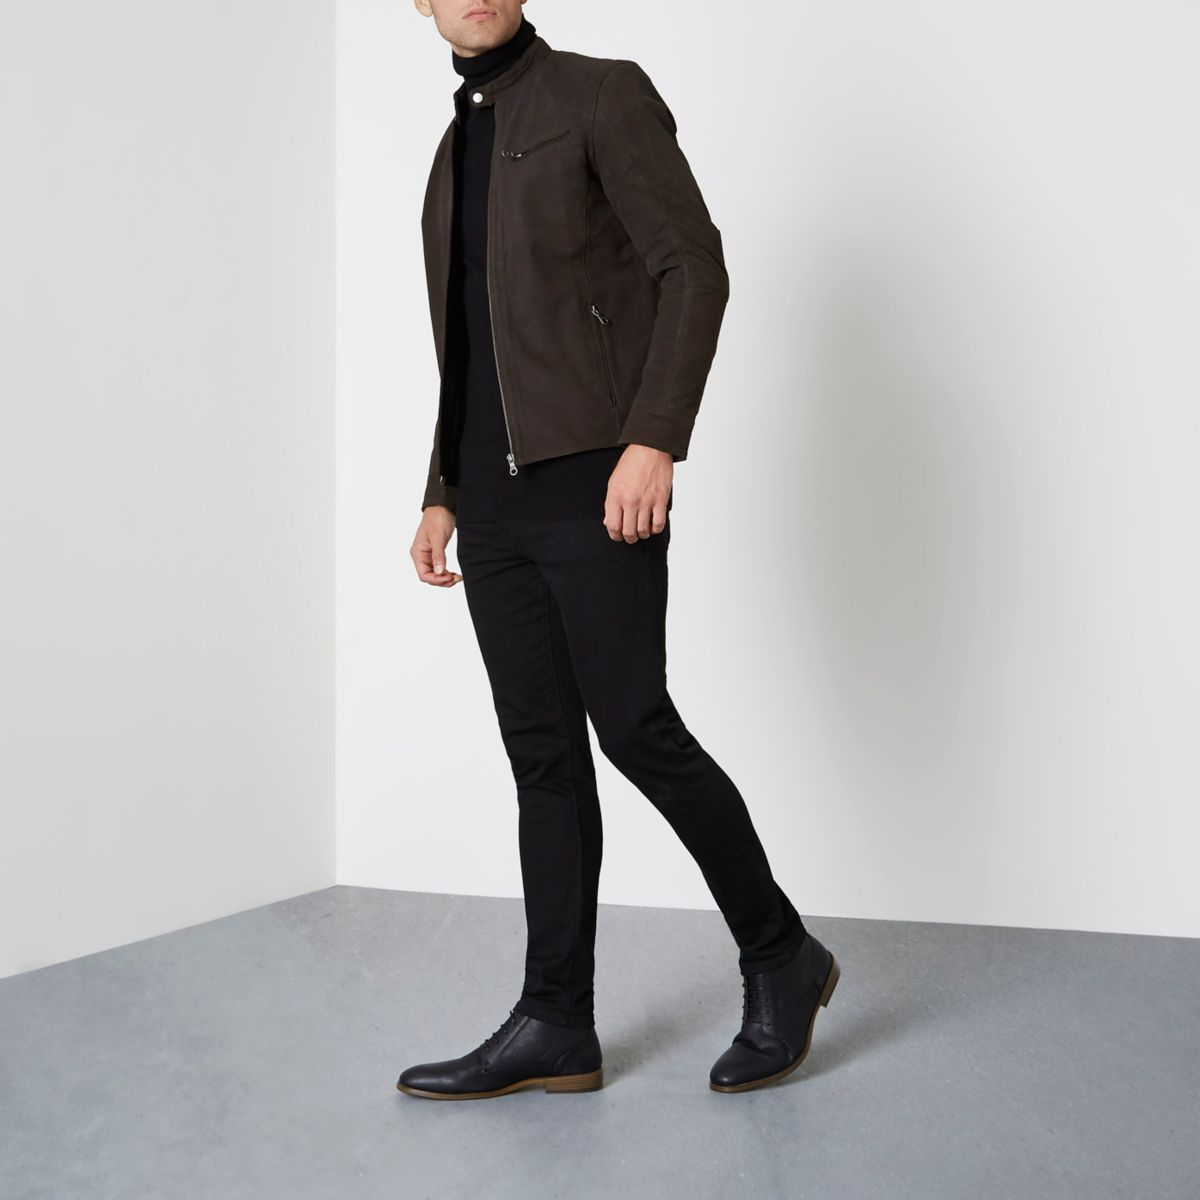 Jack & Jones Premium brown suede racer jacket